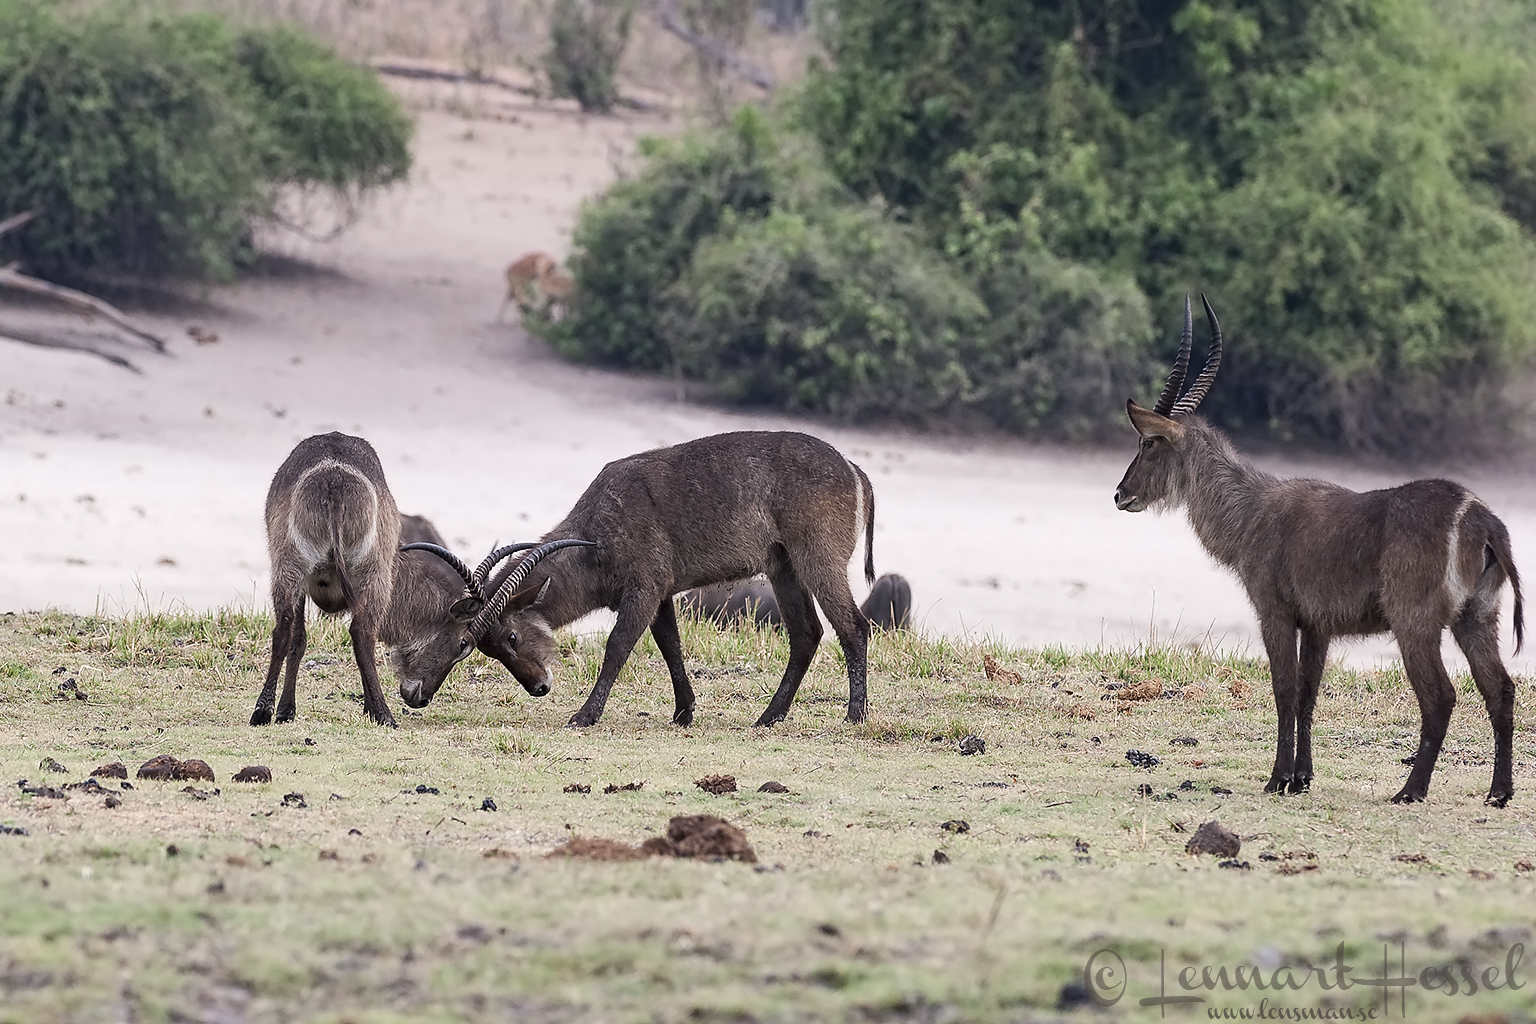 Waterbuck fighting at Chobe floodplains, Botswana